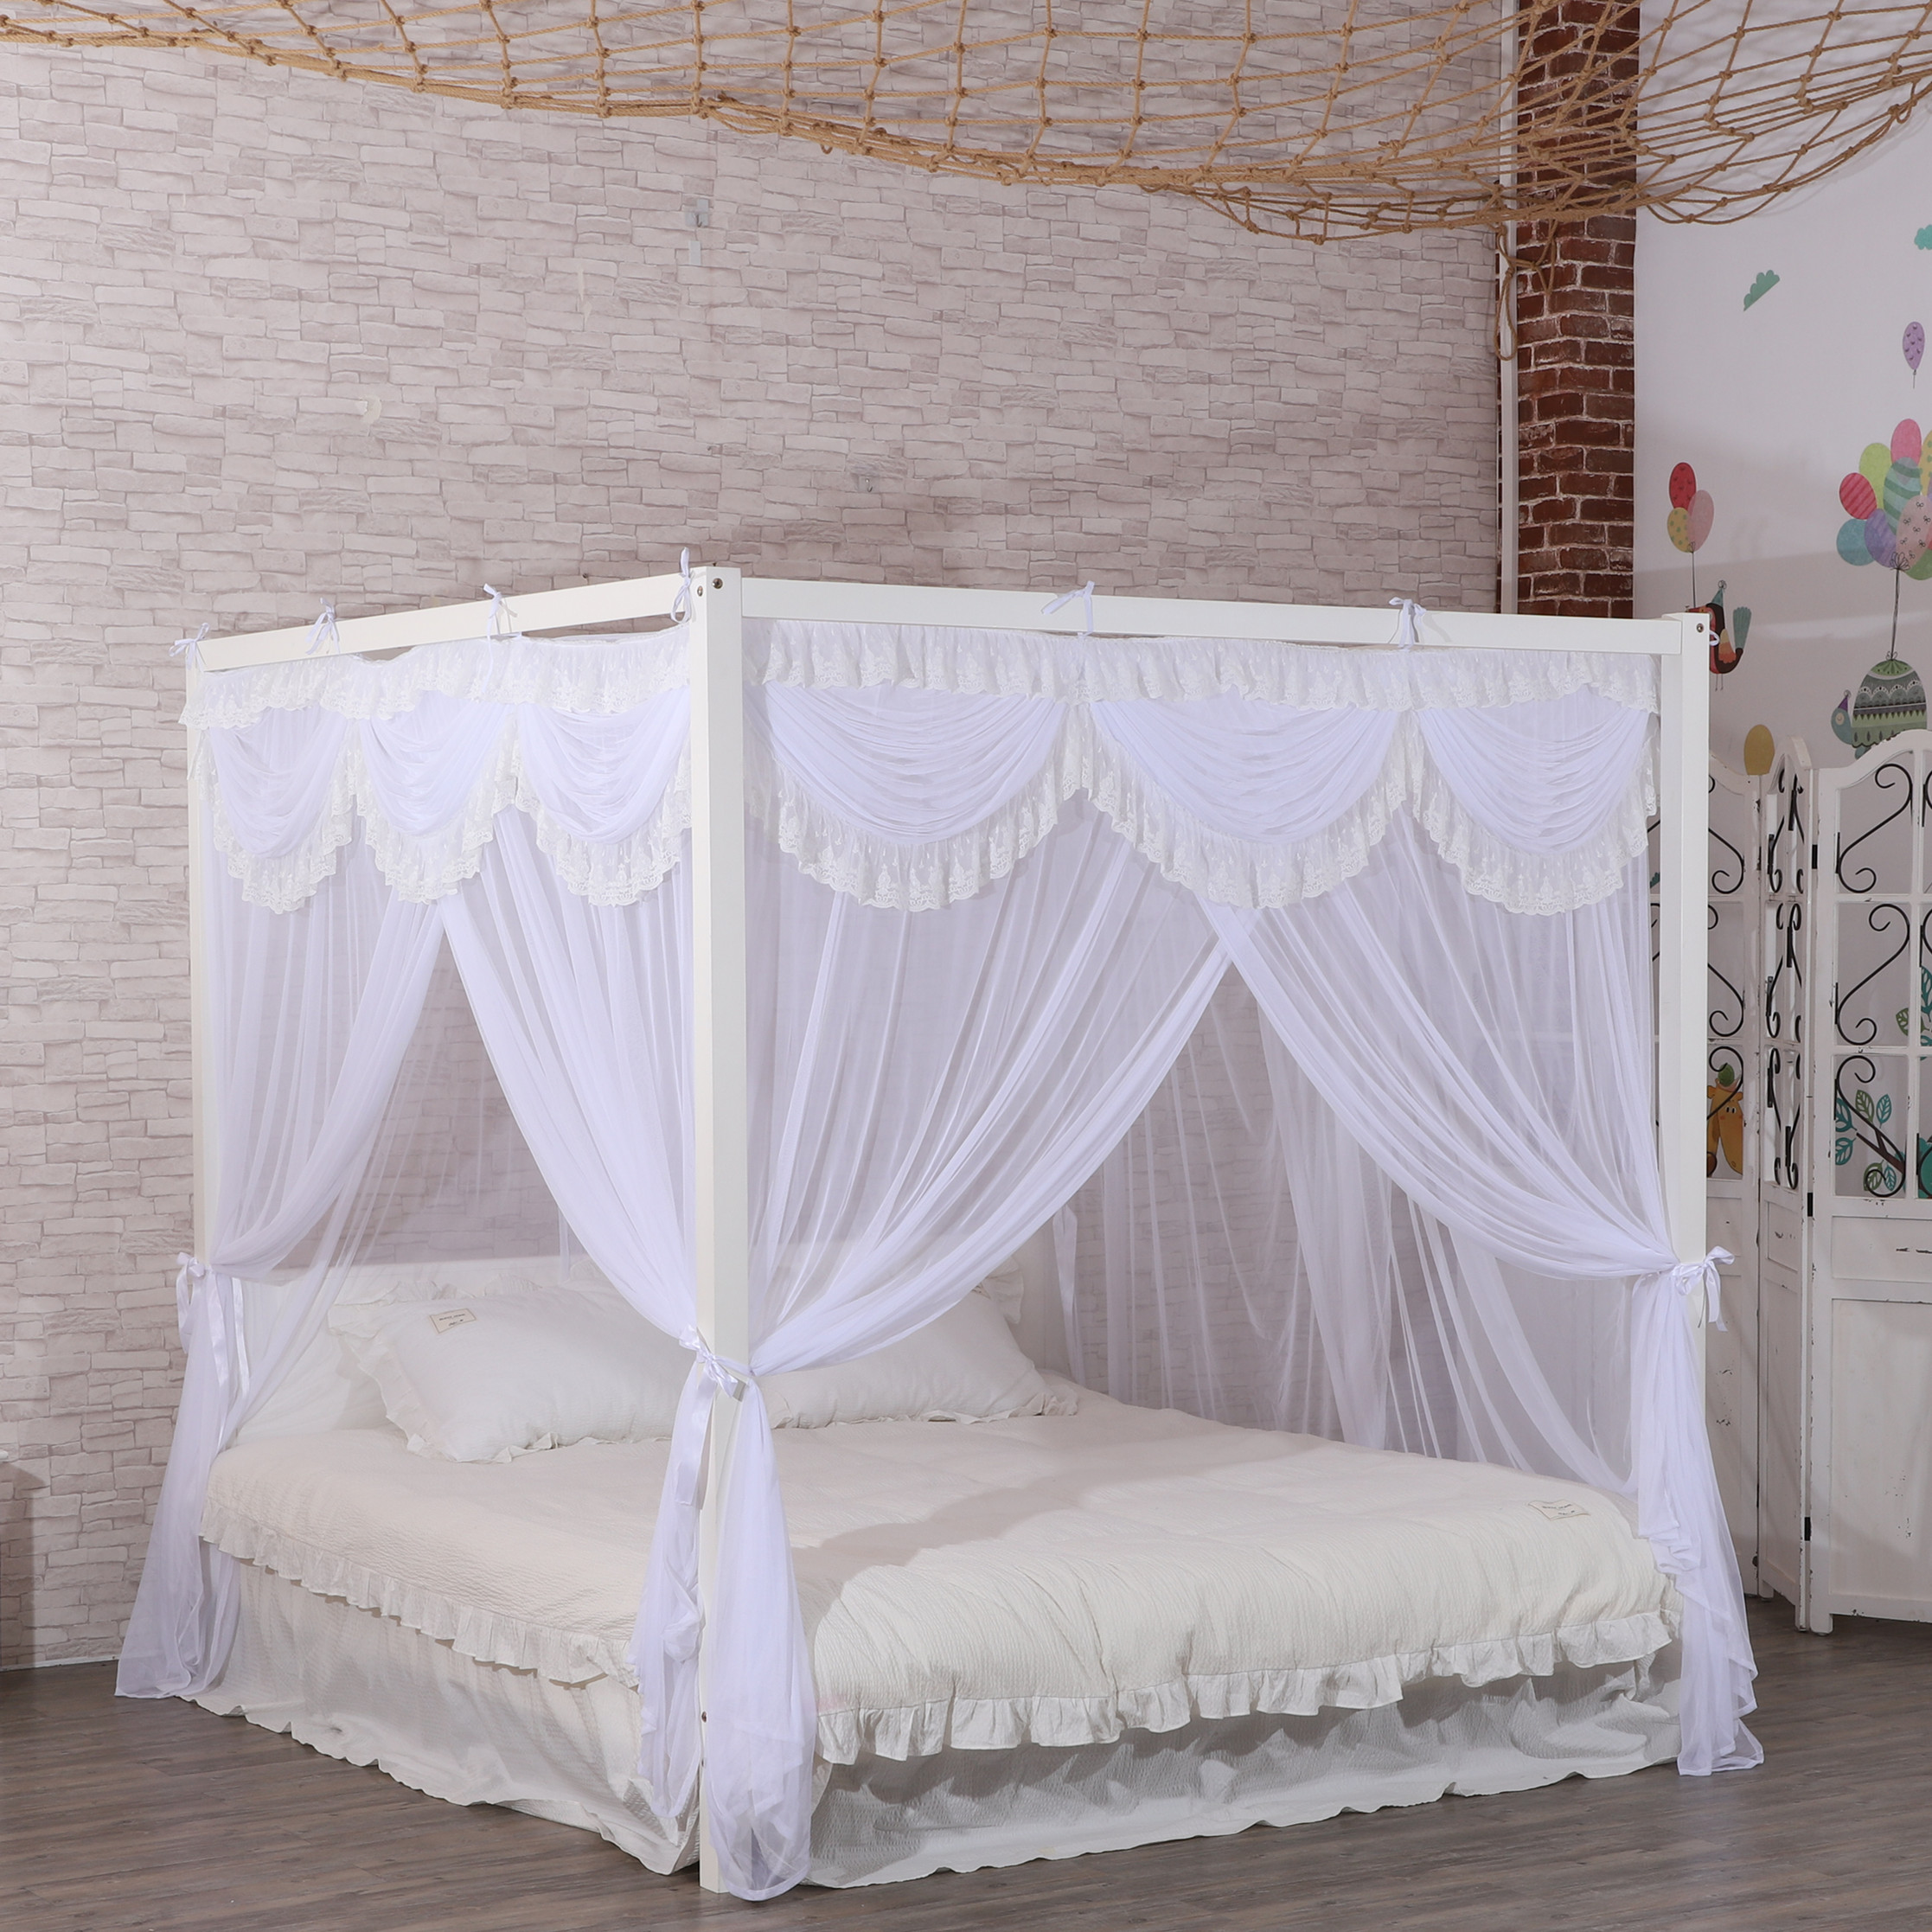 Soft Elegant Palace Rectangular Hanging Queen Size Mosquito Net For Adult Big Bedroom